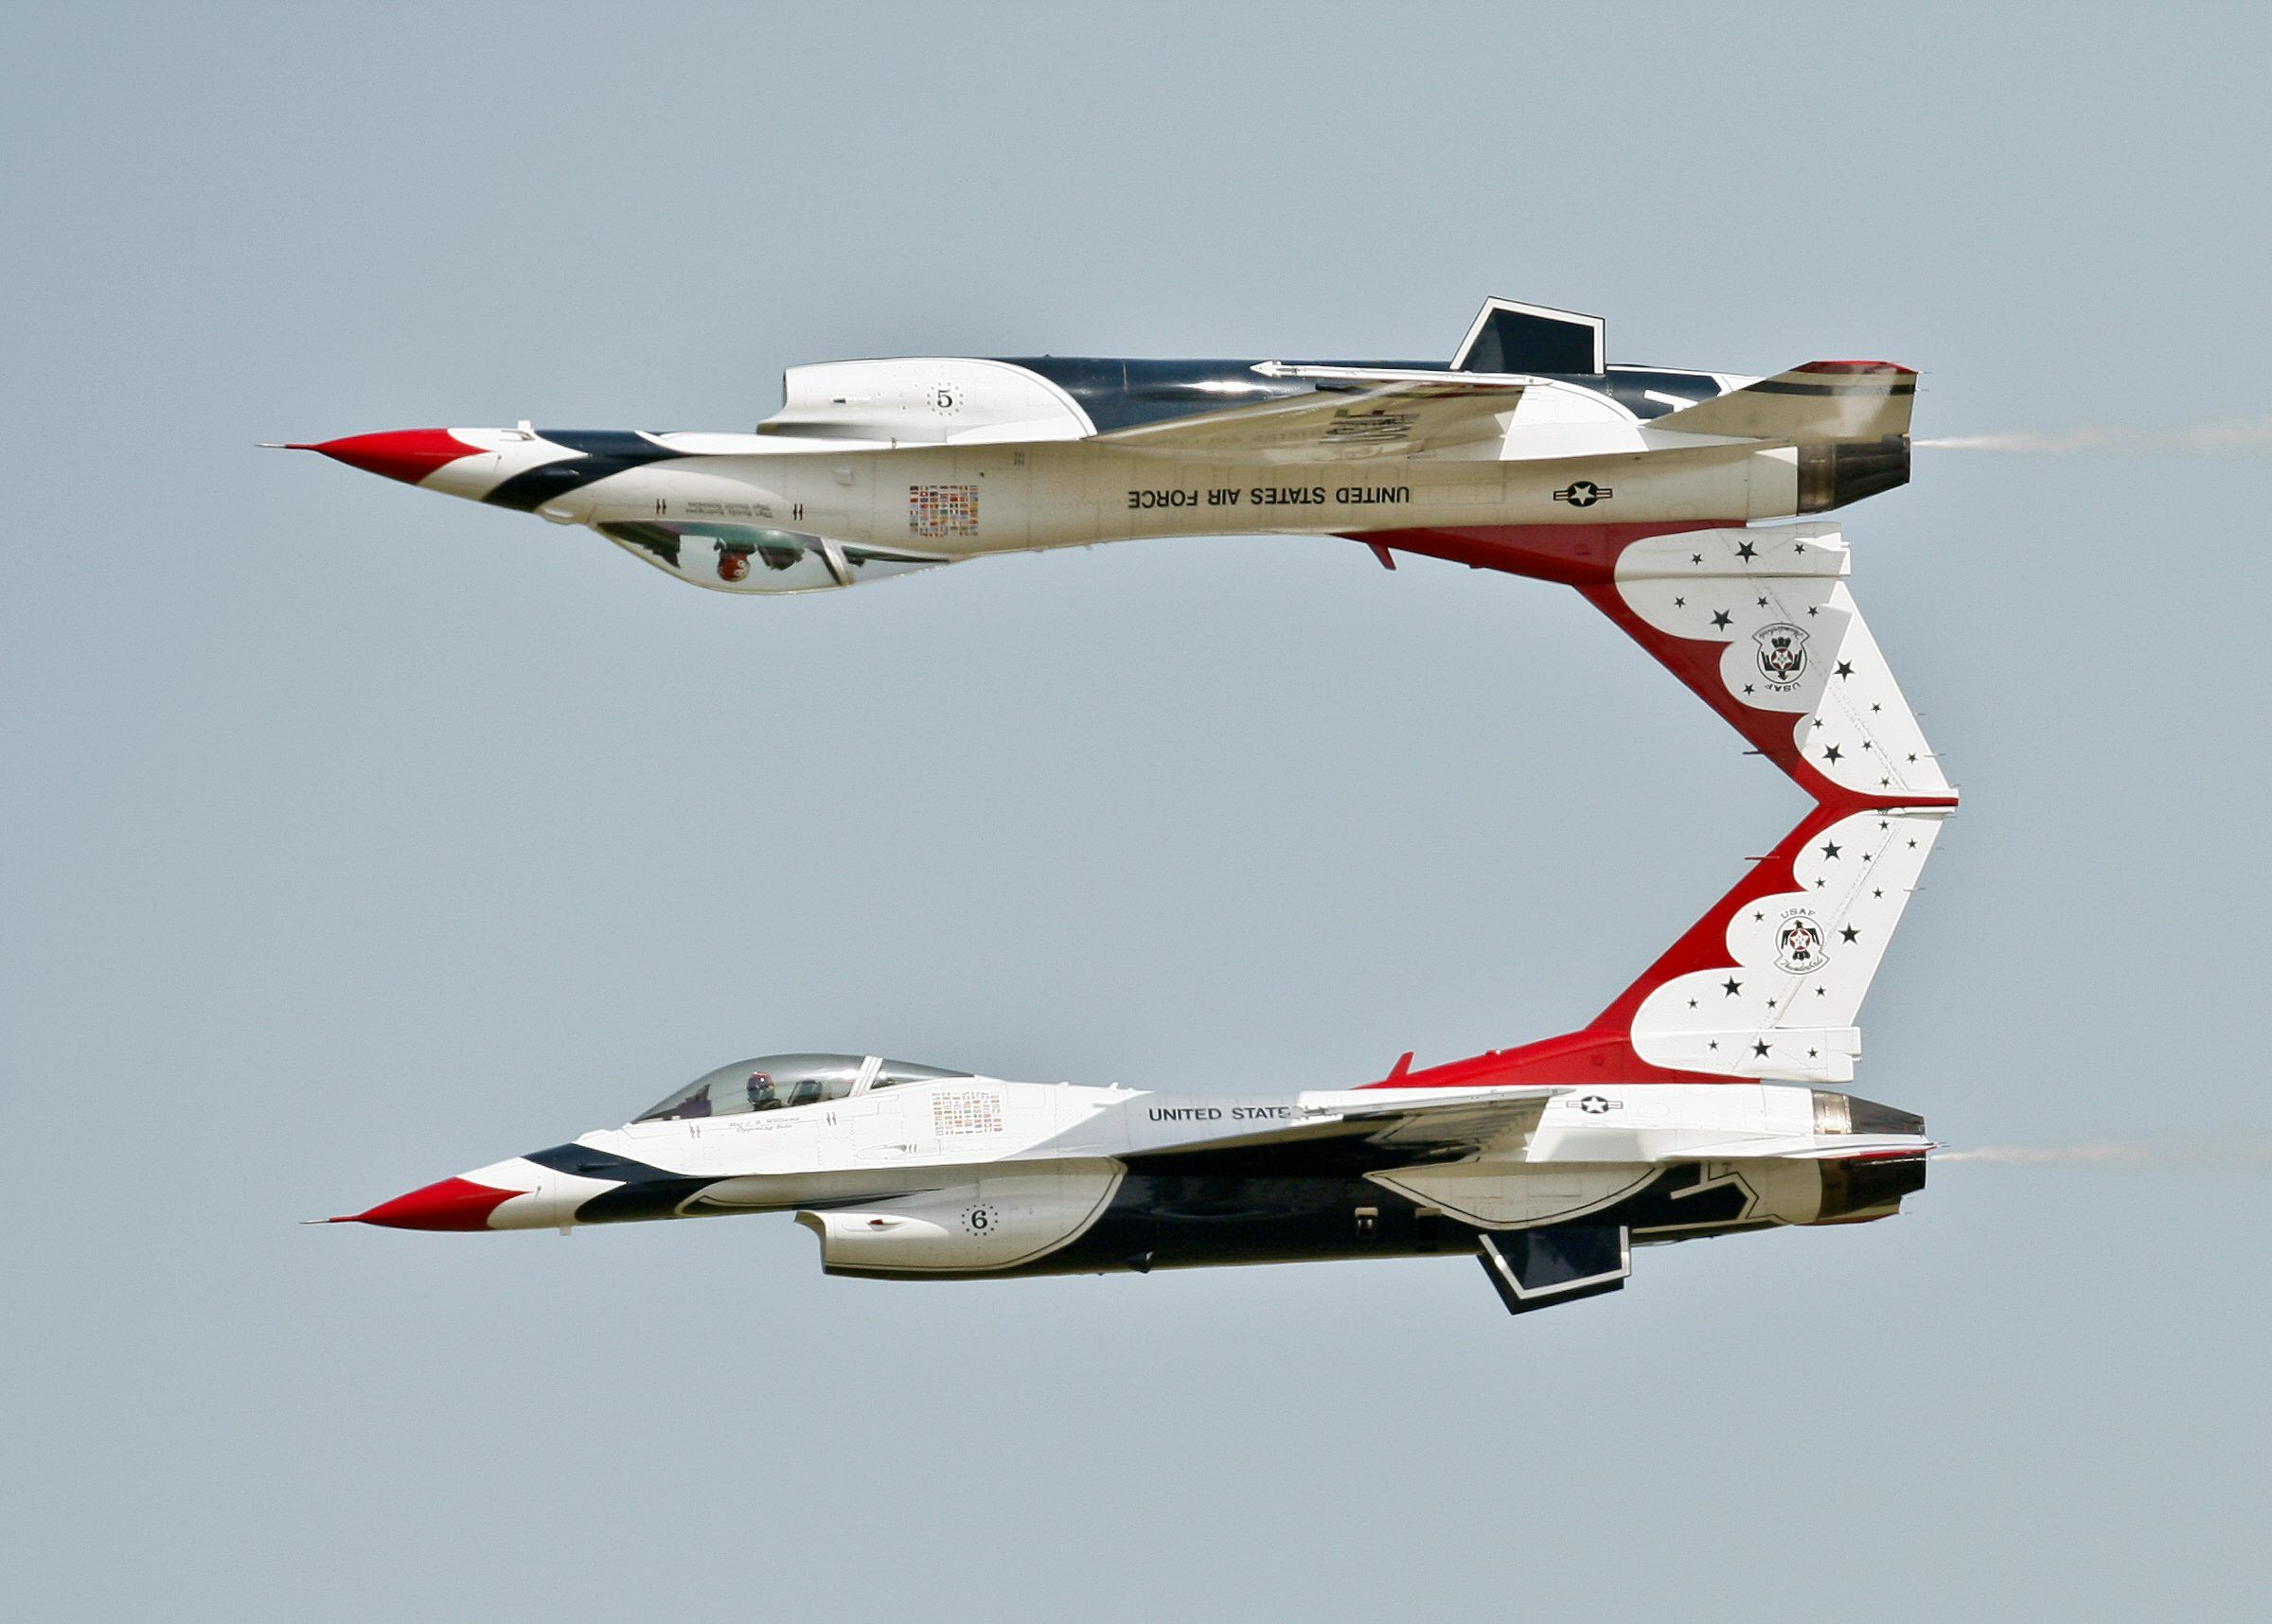 Air Force Thunderbirds too male, too white, top general warns: The Air Force's vaunted Thunderbirds jet fighter aerobatics team is not diverse enough...